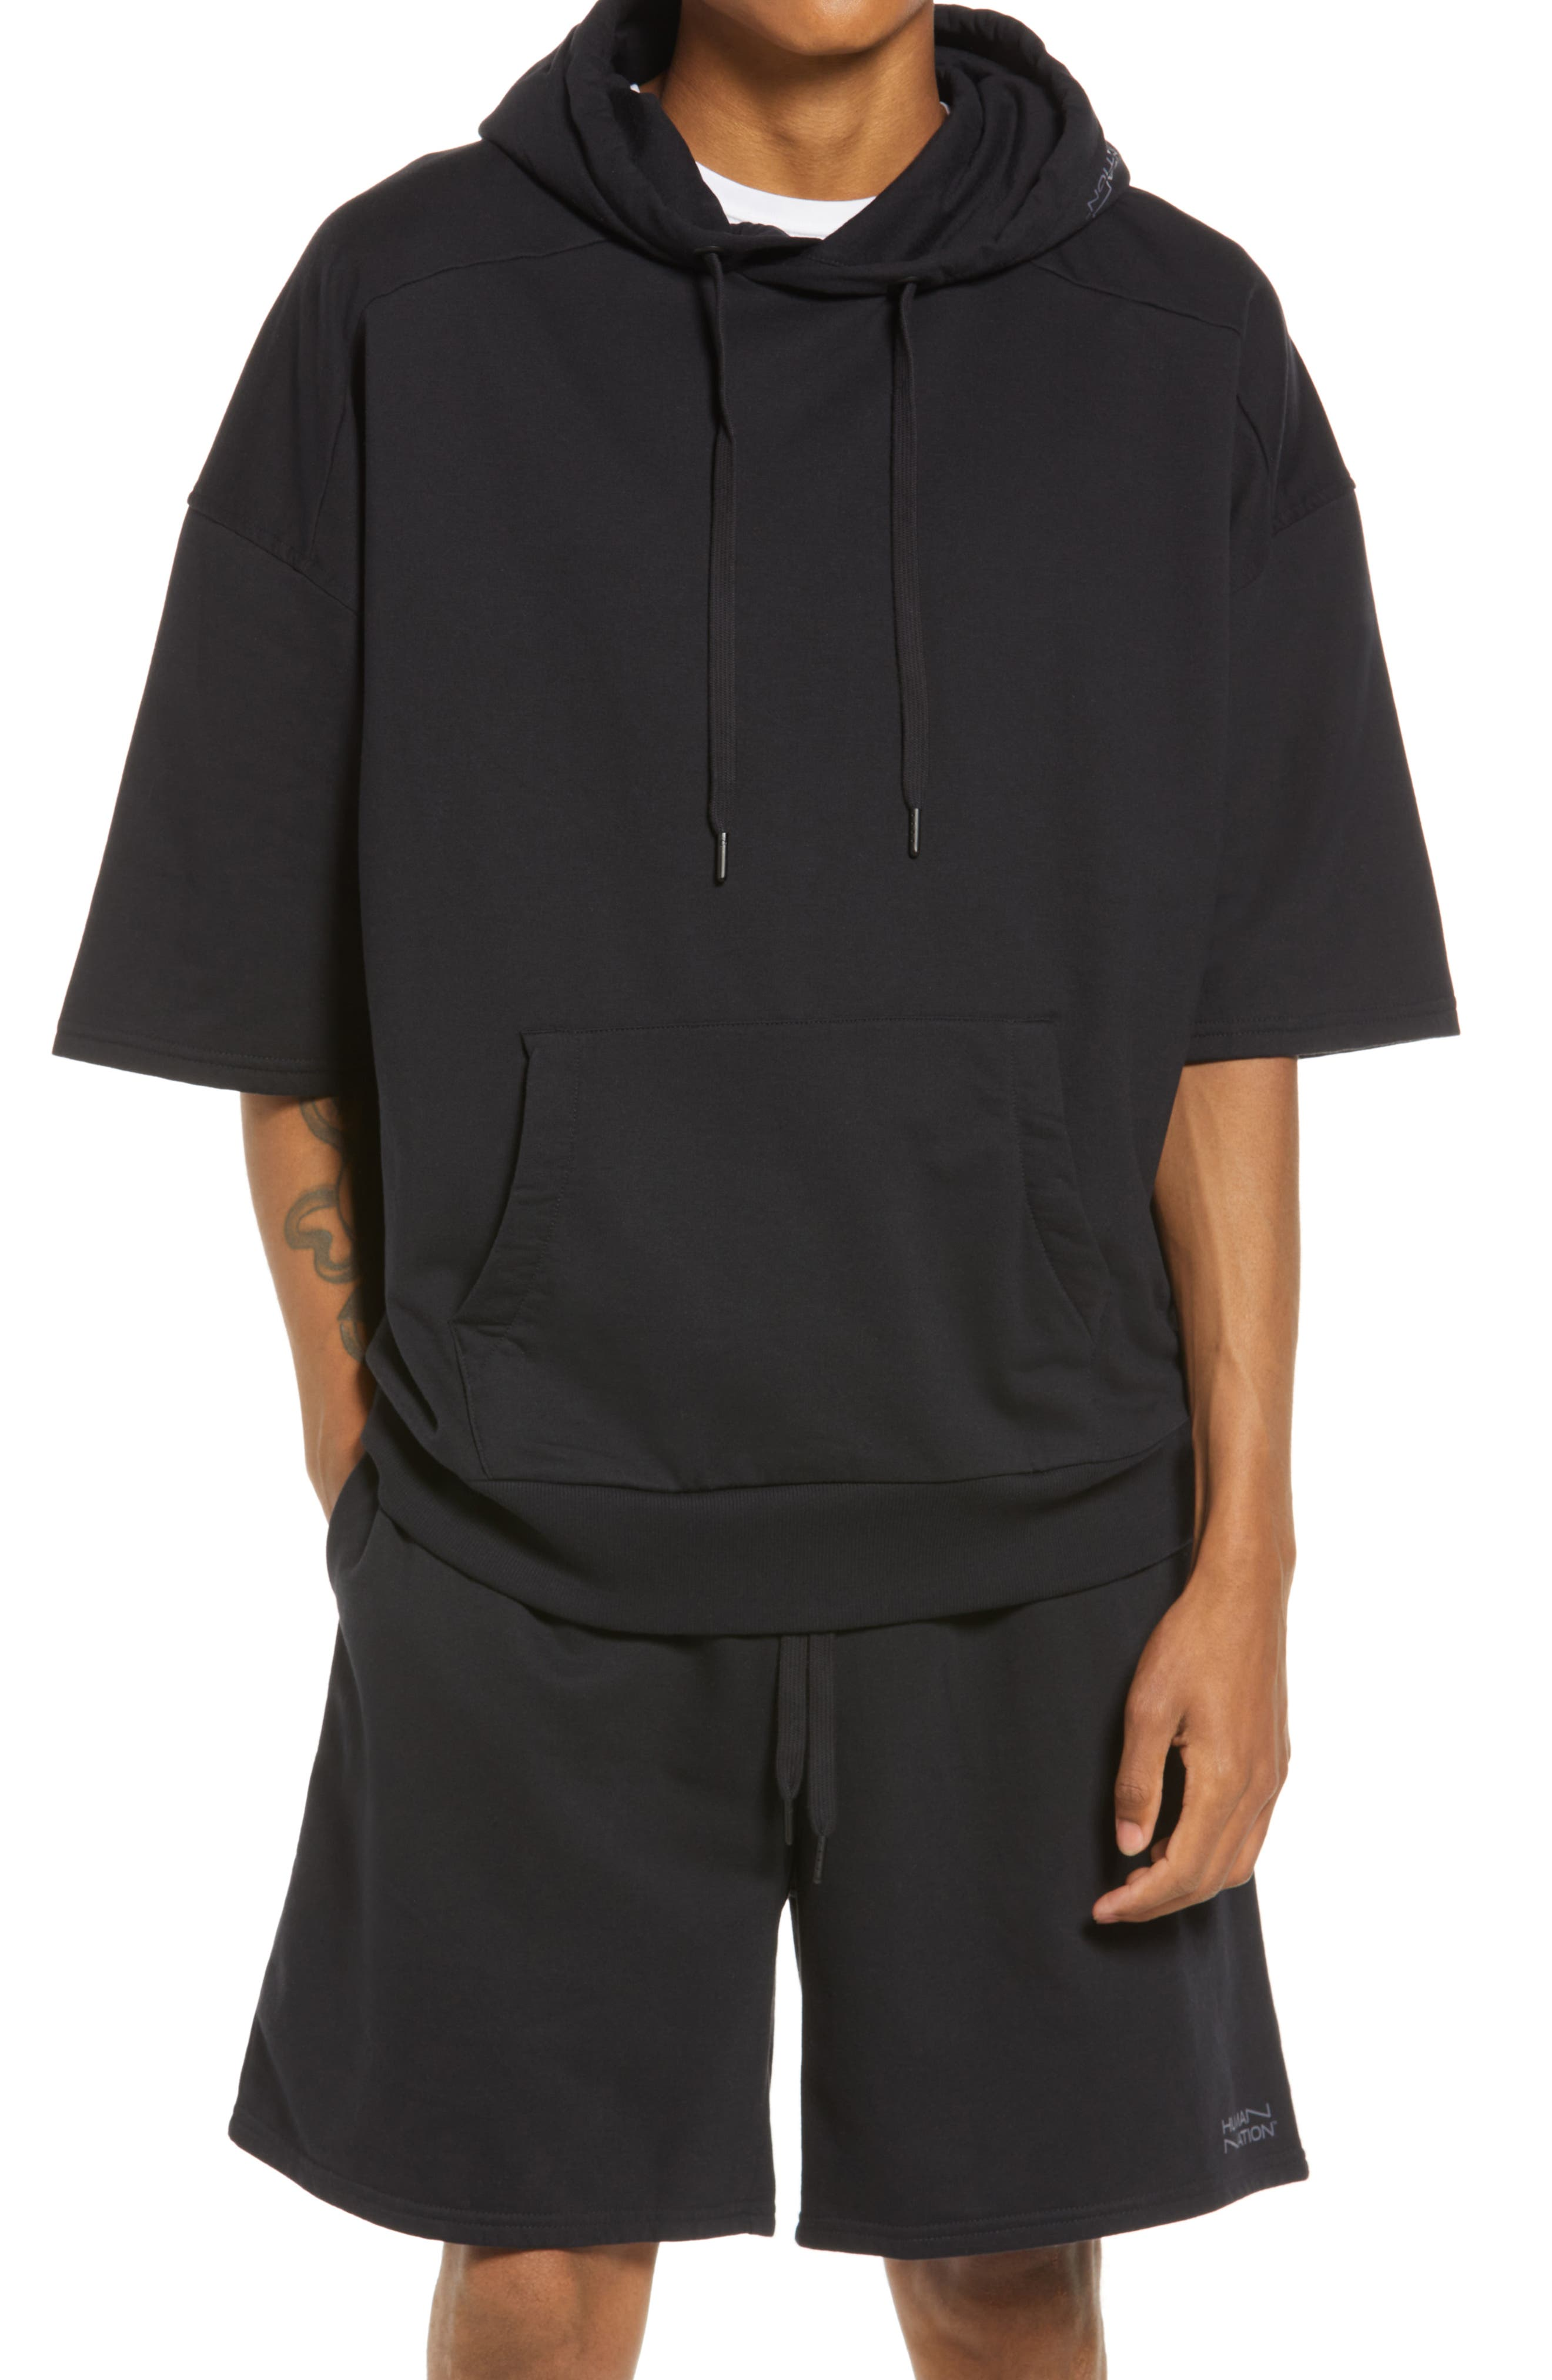 Gender Inclusive Expression Organic Cotton Blend Short Sleeve Hoodie